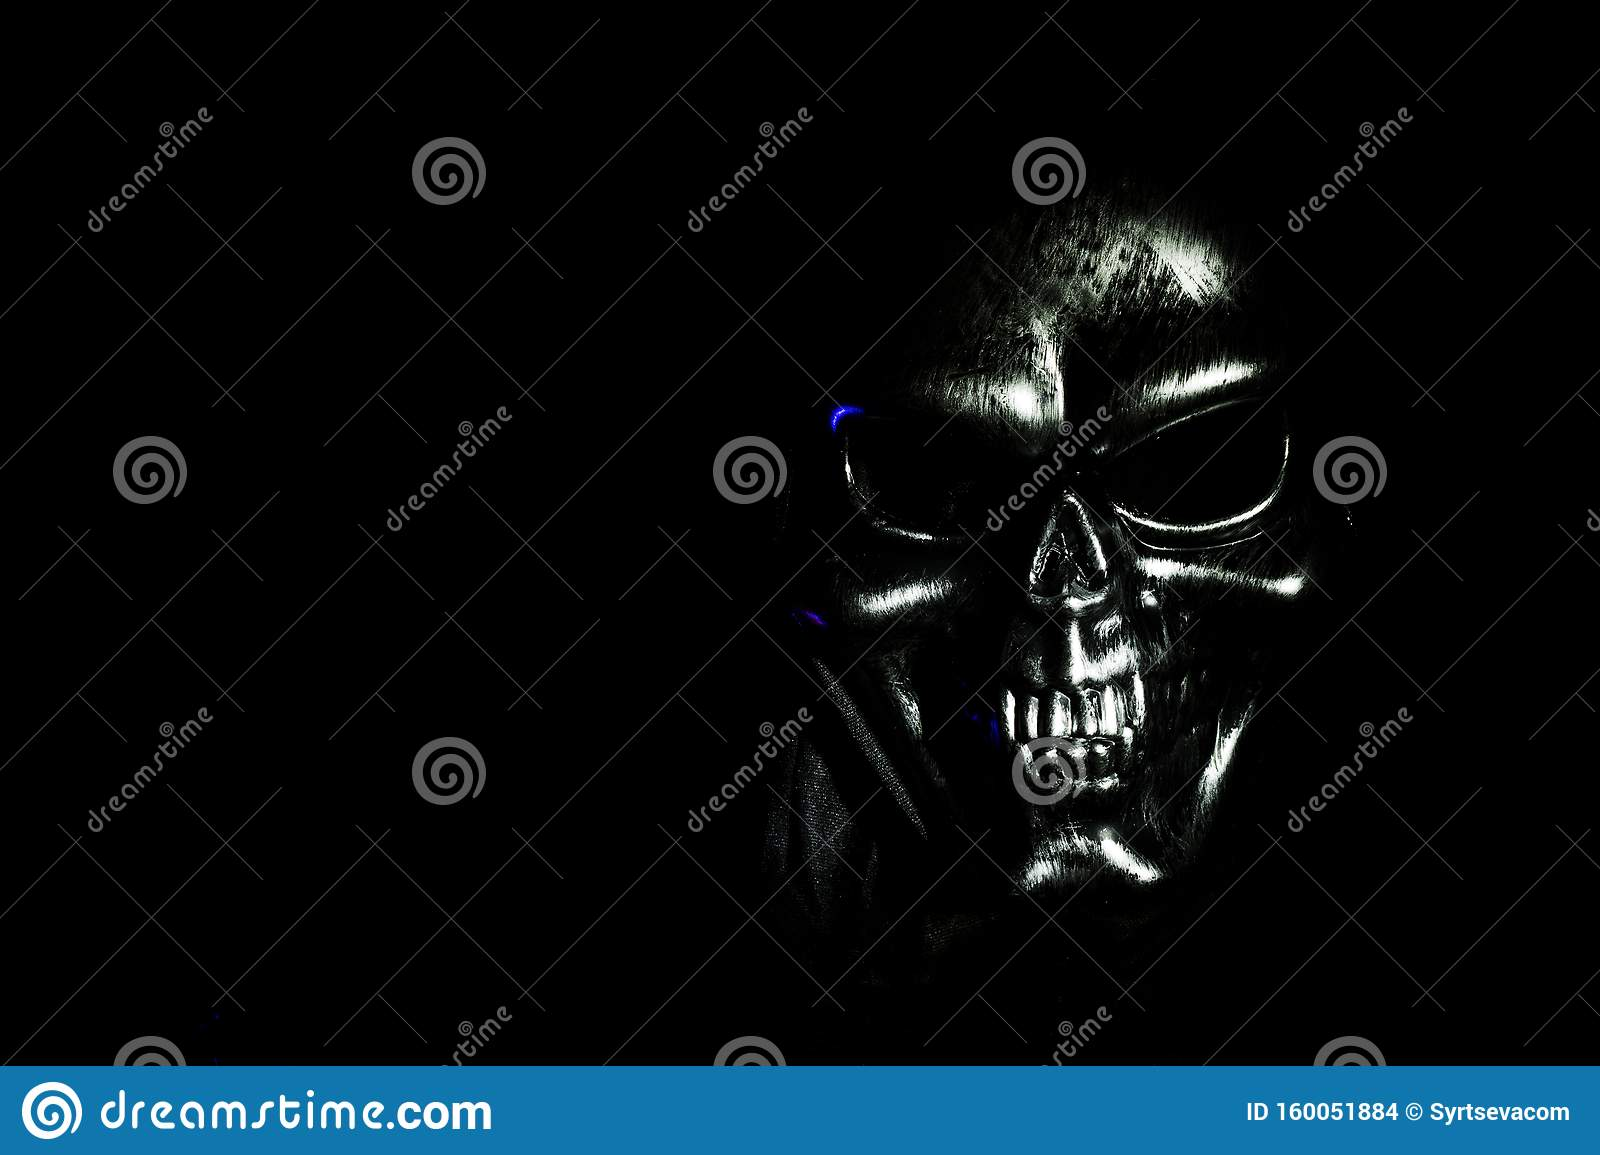 Scary Skul On Black Background Selective Focus Scary Grunge Skull Wallpaper Halloween Background Stock Photo Image Of Kill Devil 160051884